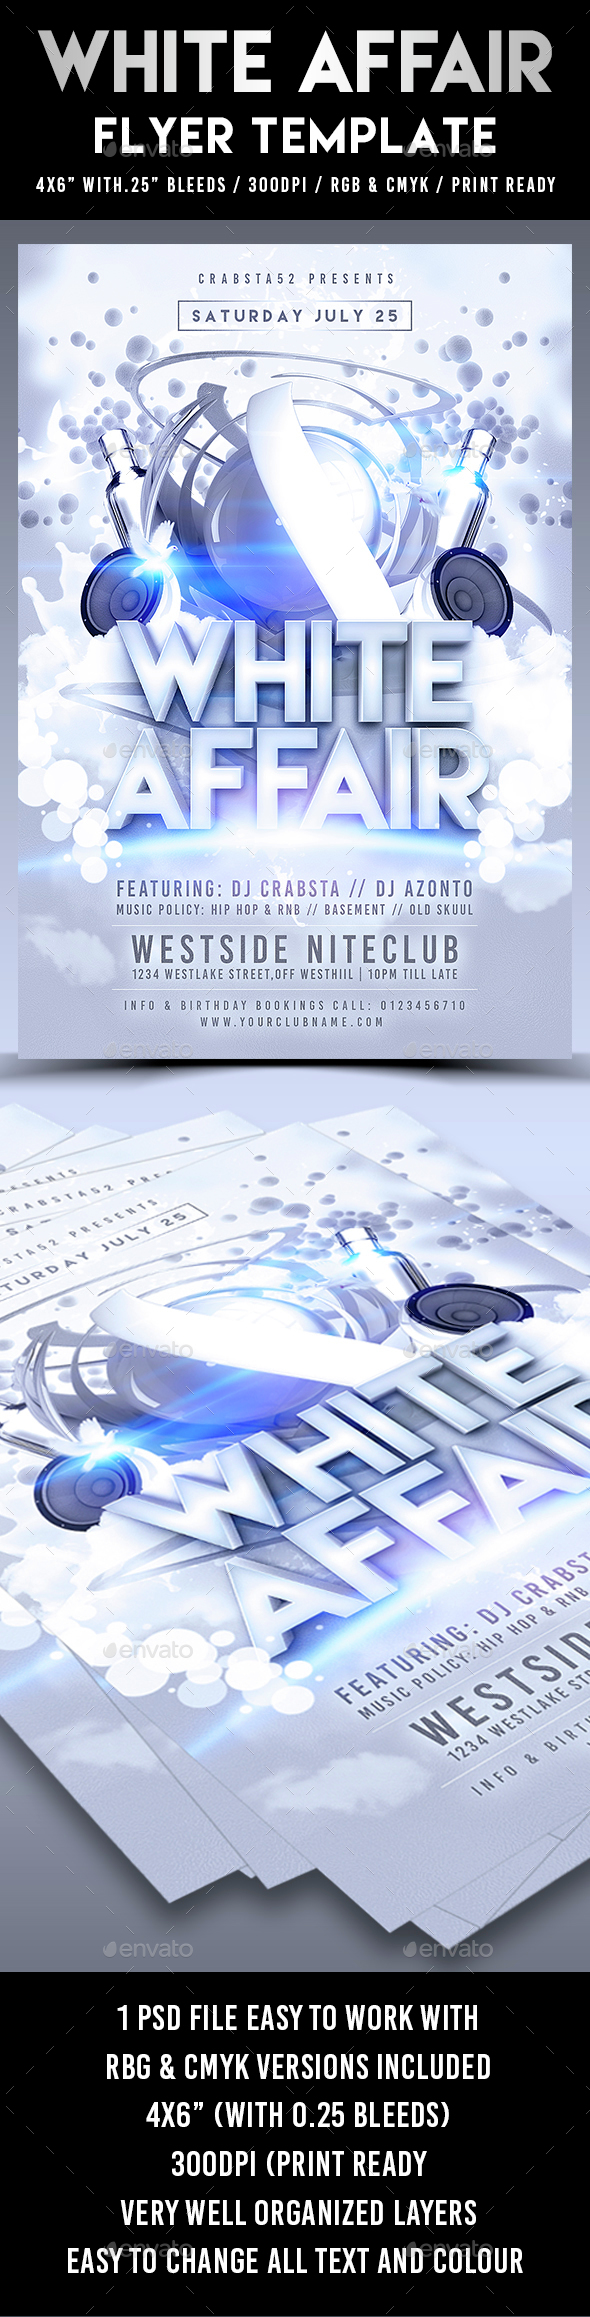 White Affair Flyer Template - Clubs & Parties Events